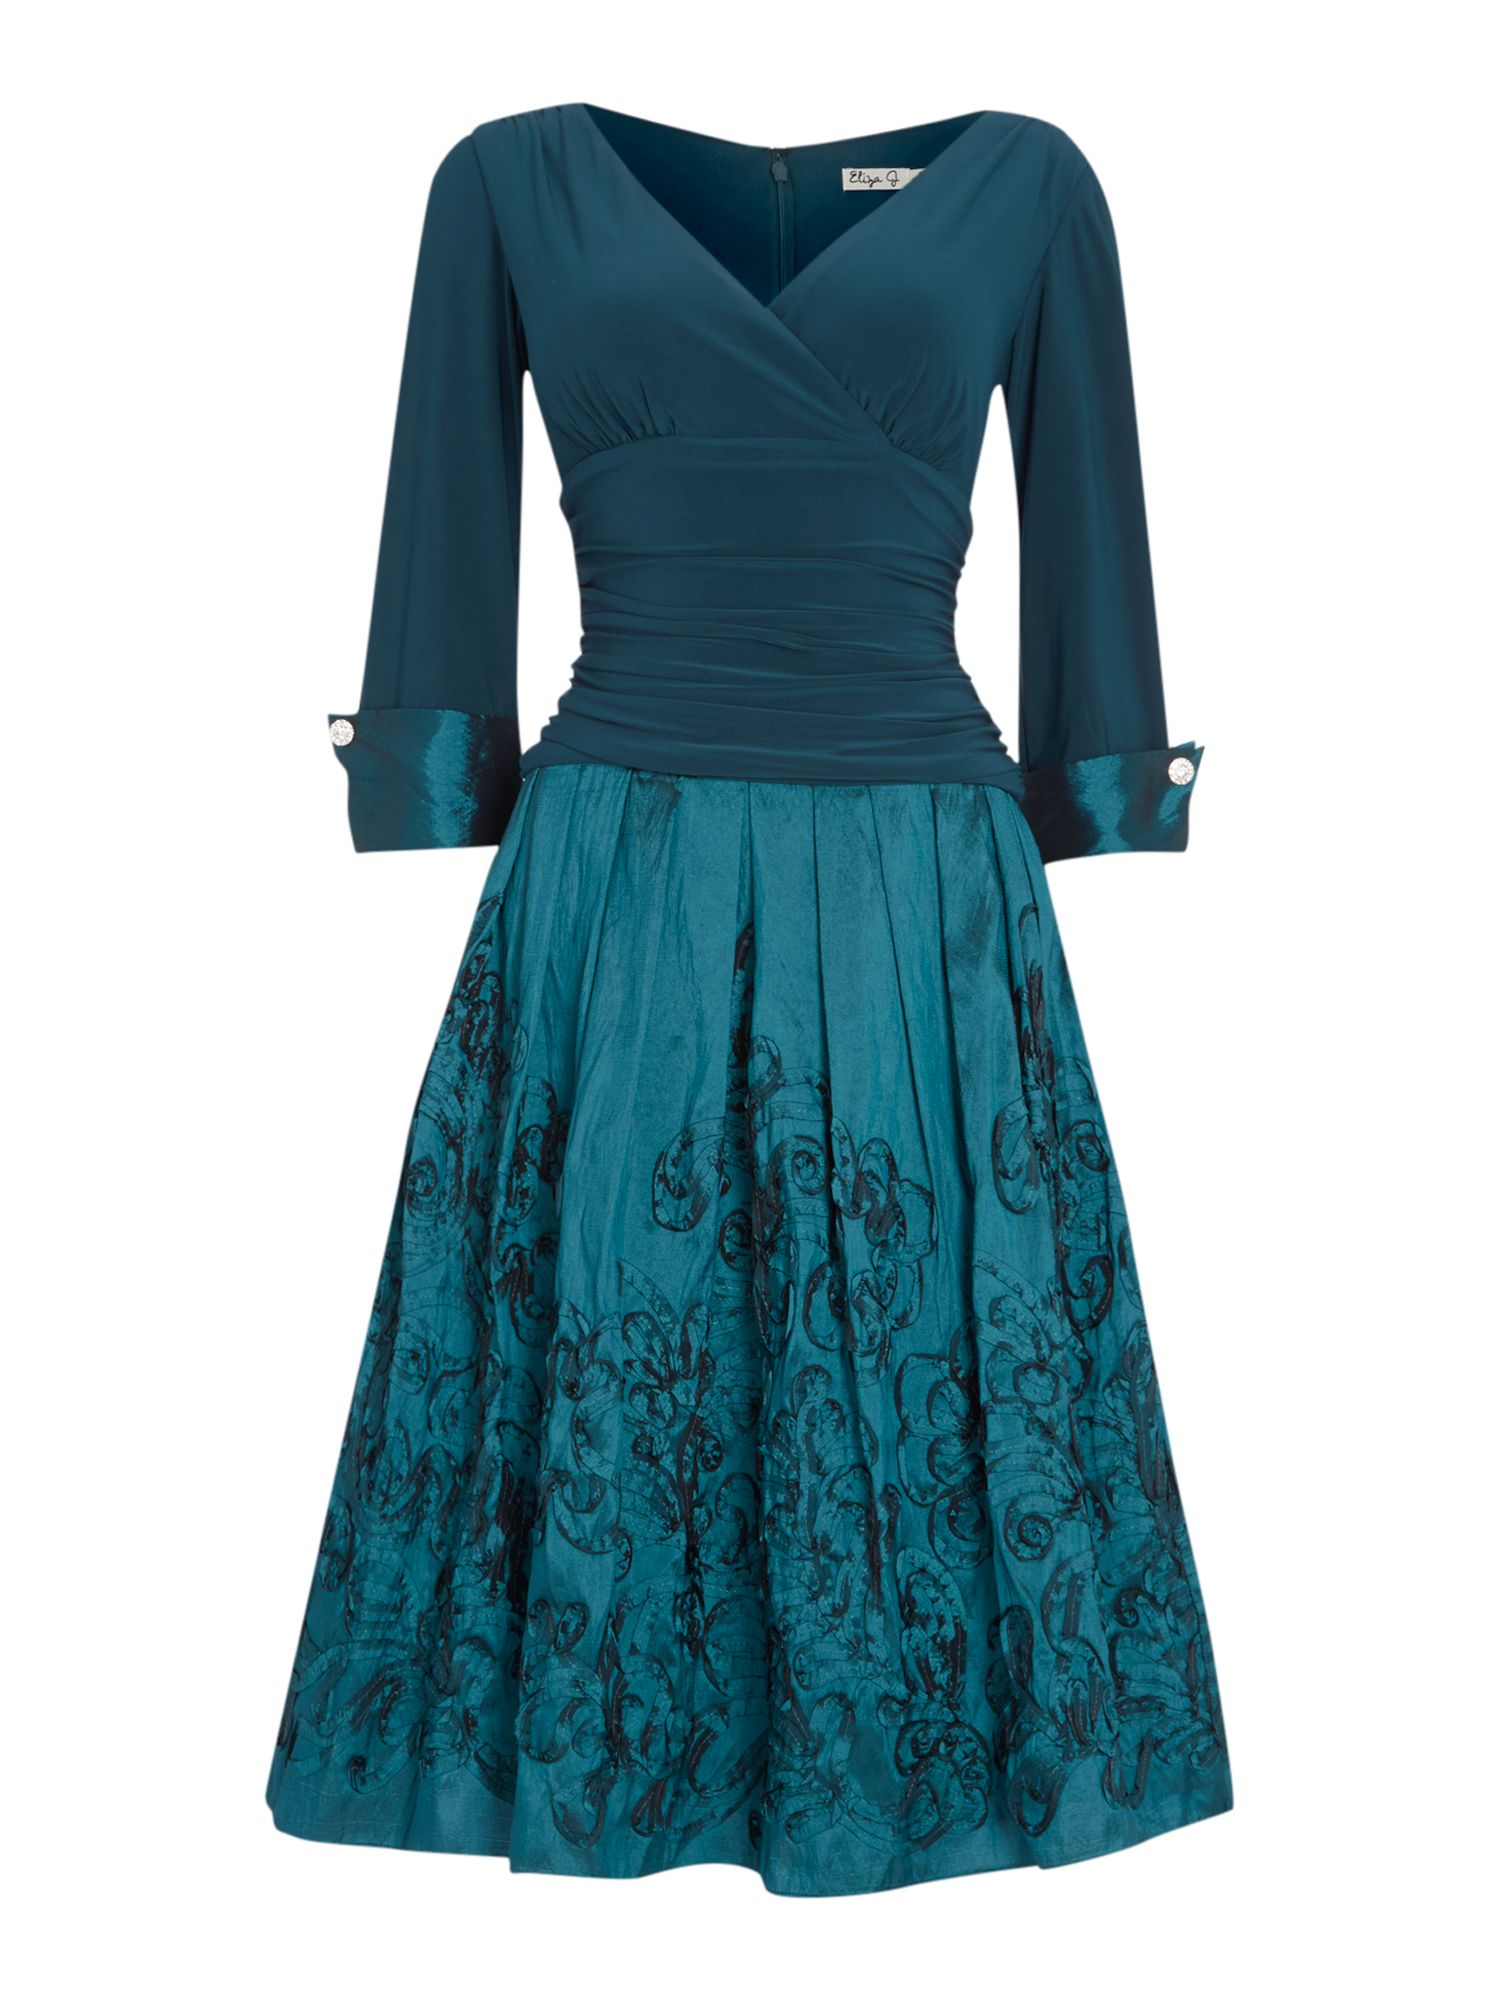 Eliza J 3/4 Cuff Sleeve Dress With Pleated Skirt in Teal ...